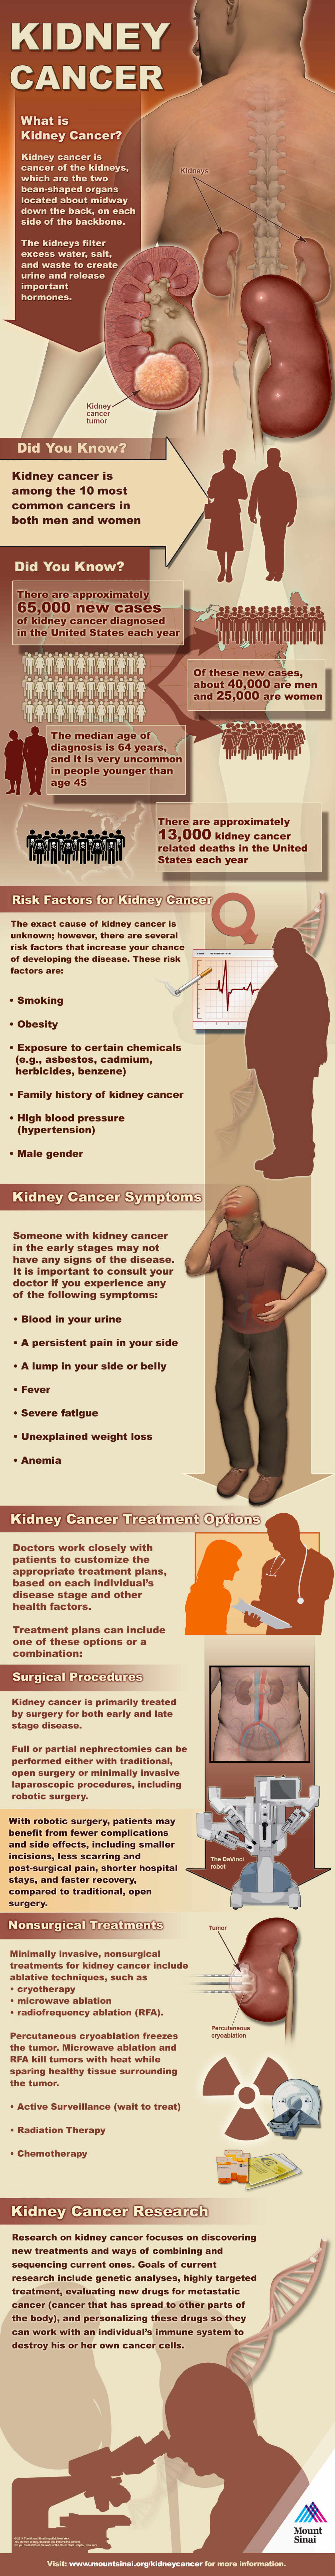 Kidney Cancer Infographic